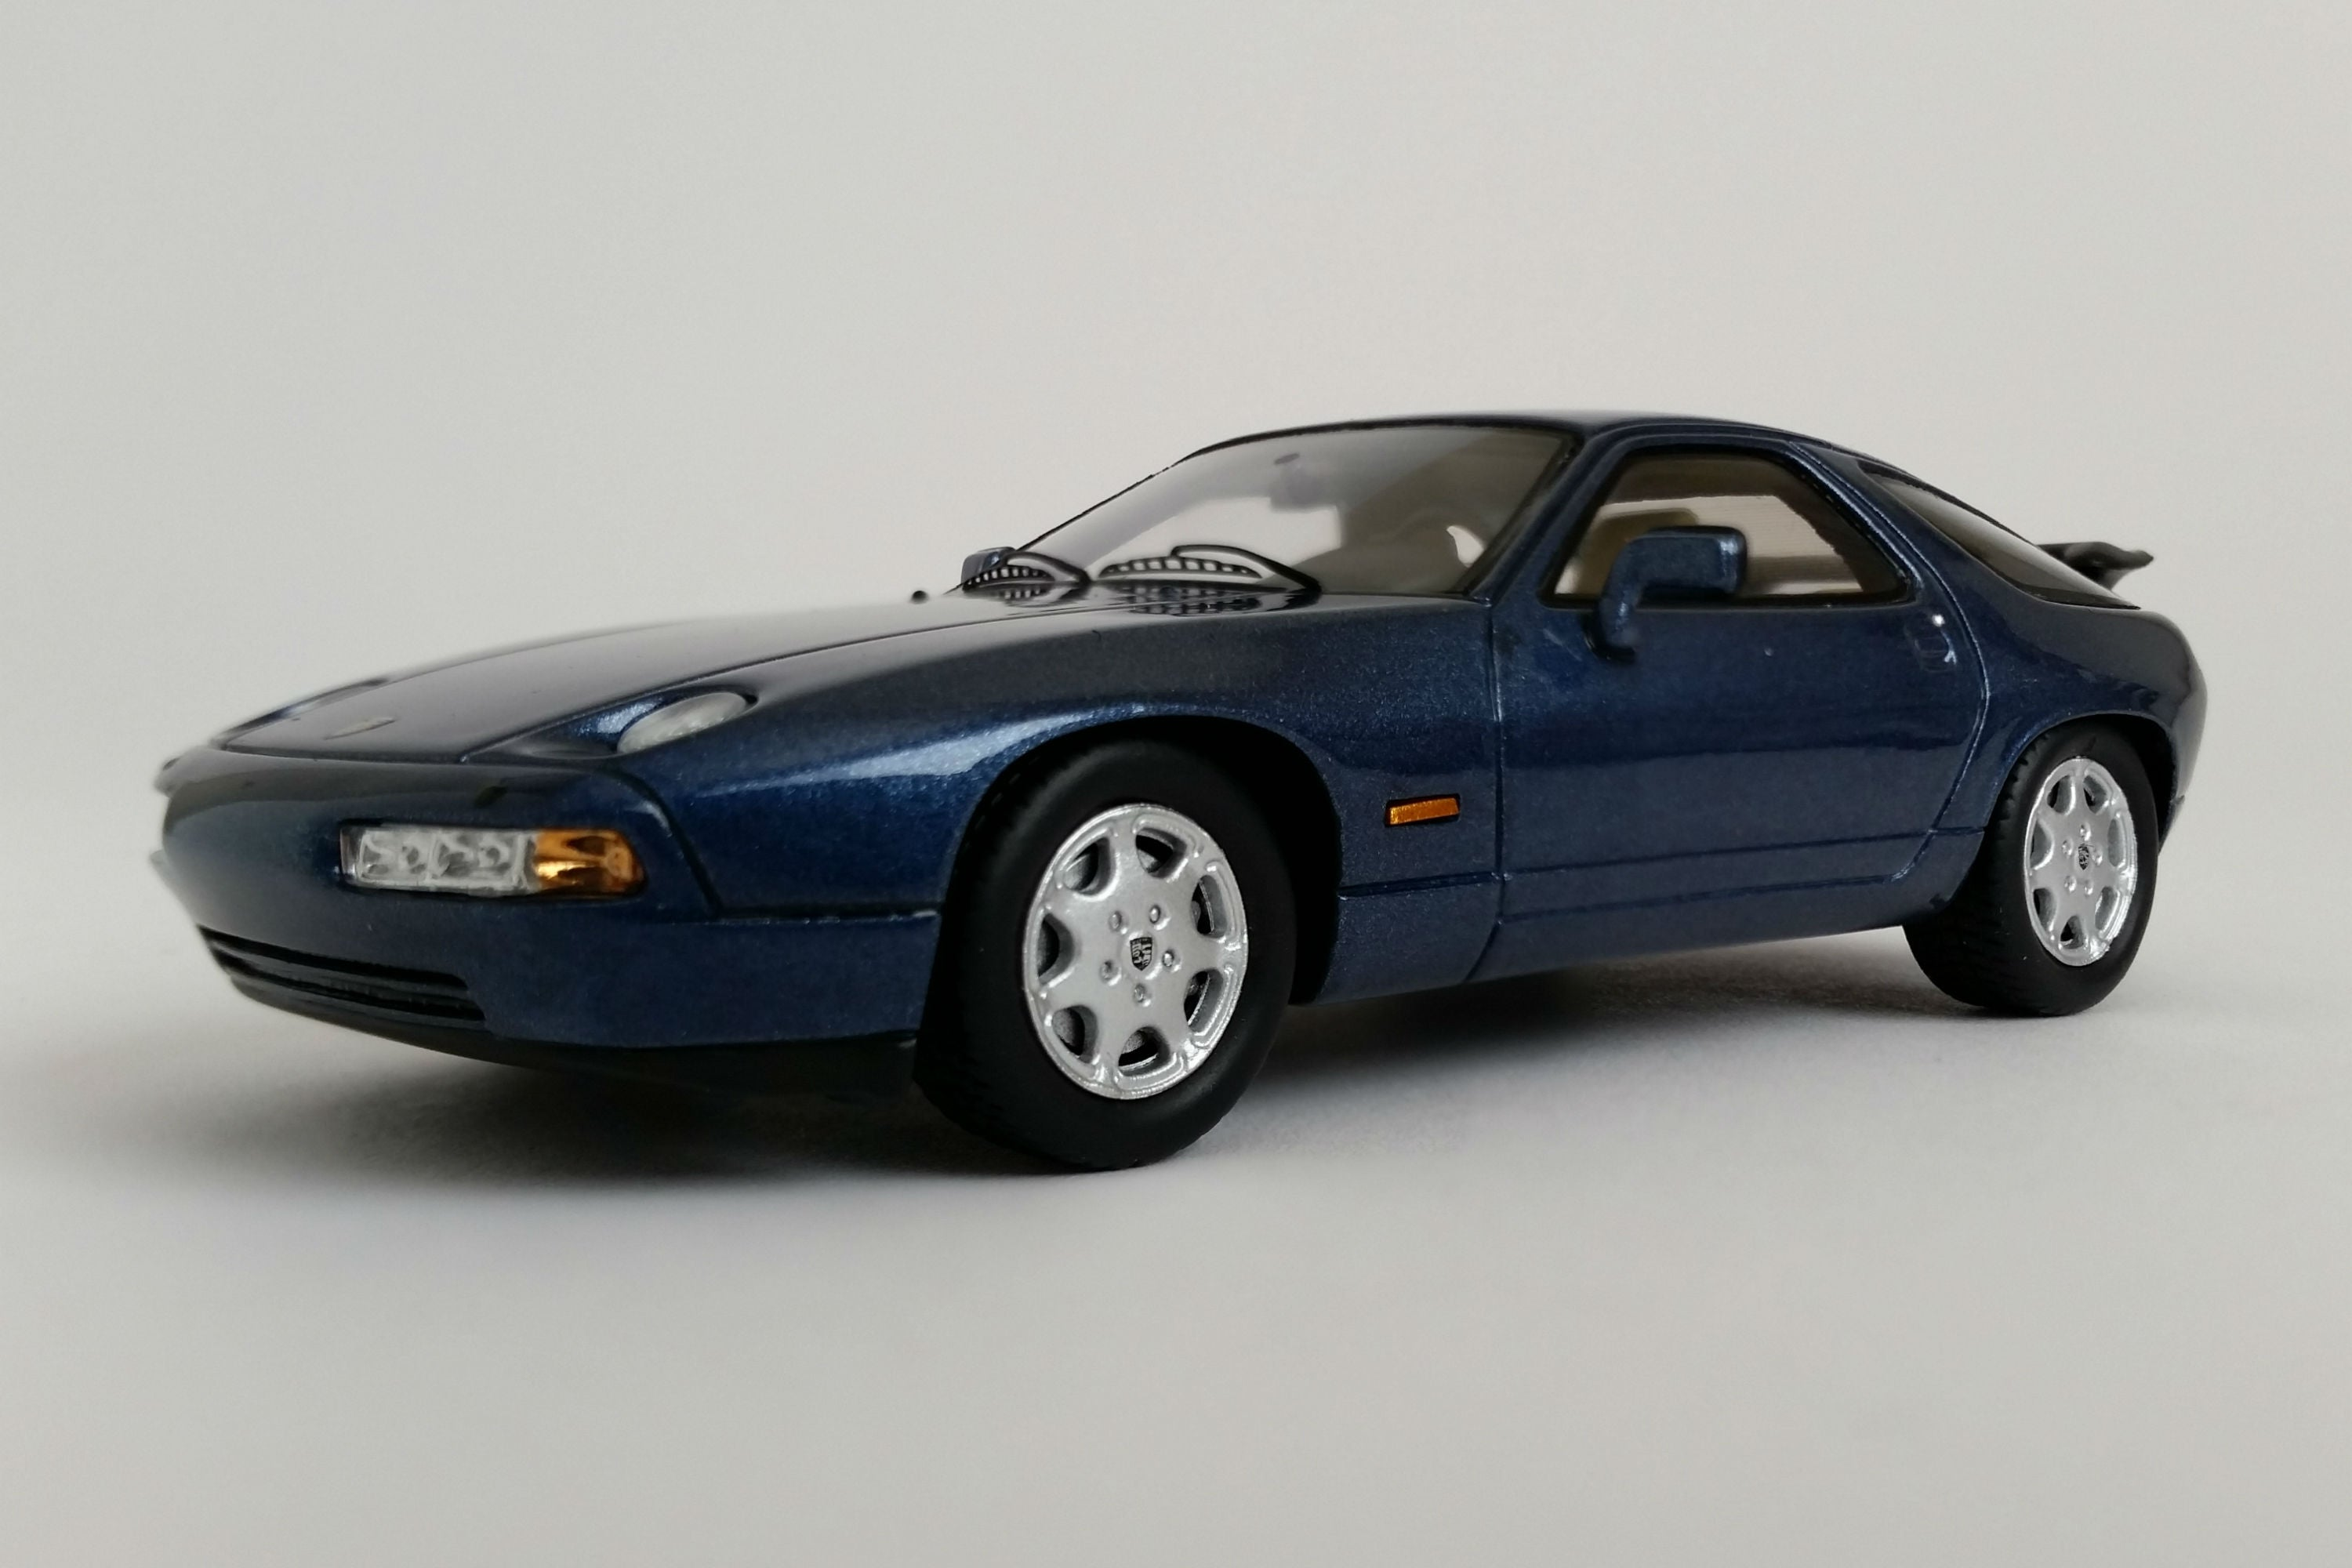 Porsche 928 GT (1989) | 1:43 Scale Model Car by Spark | Front Quarter